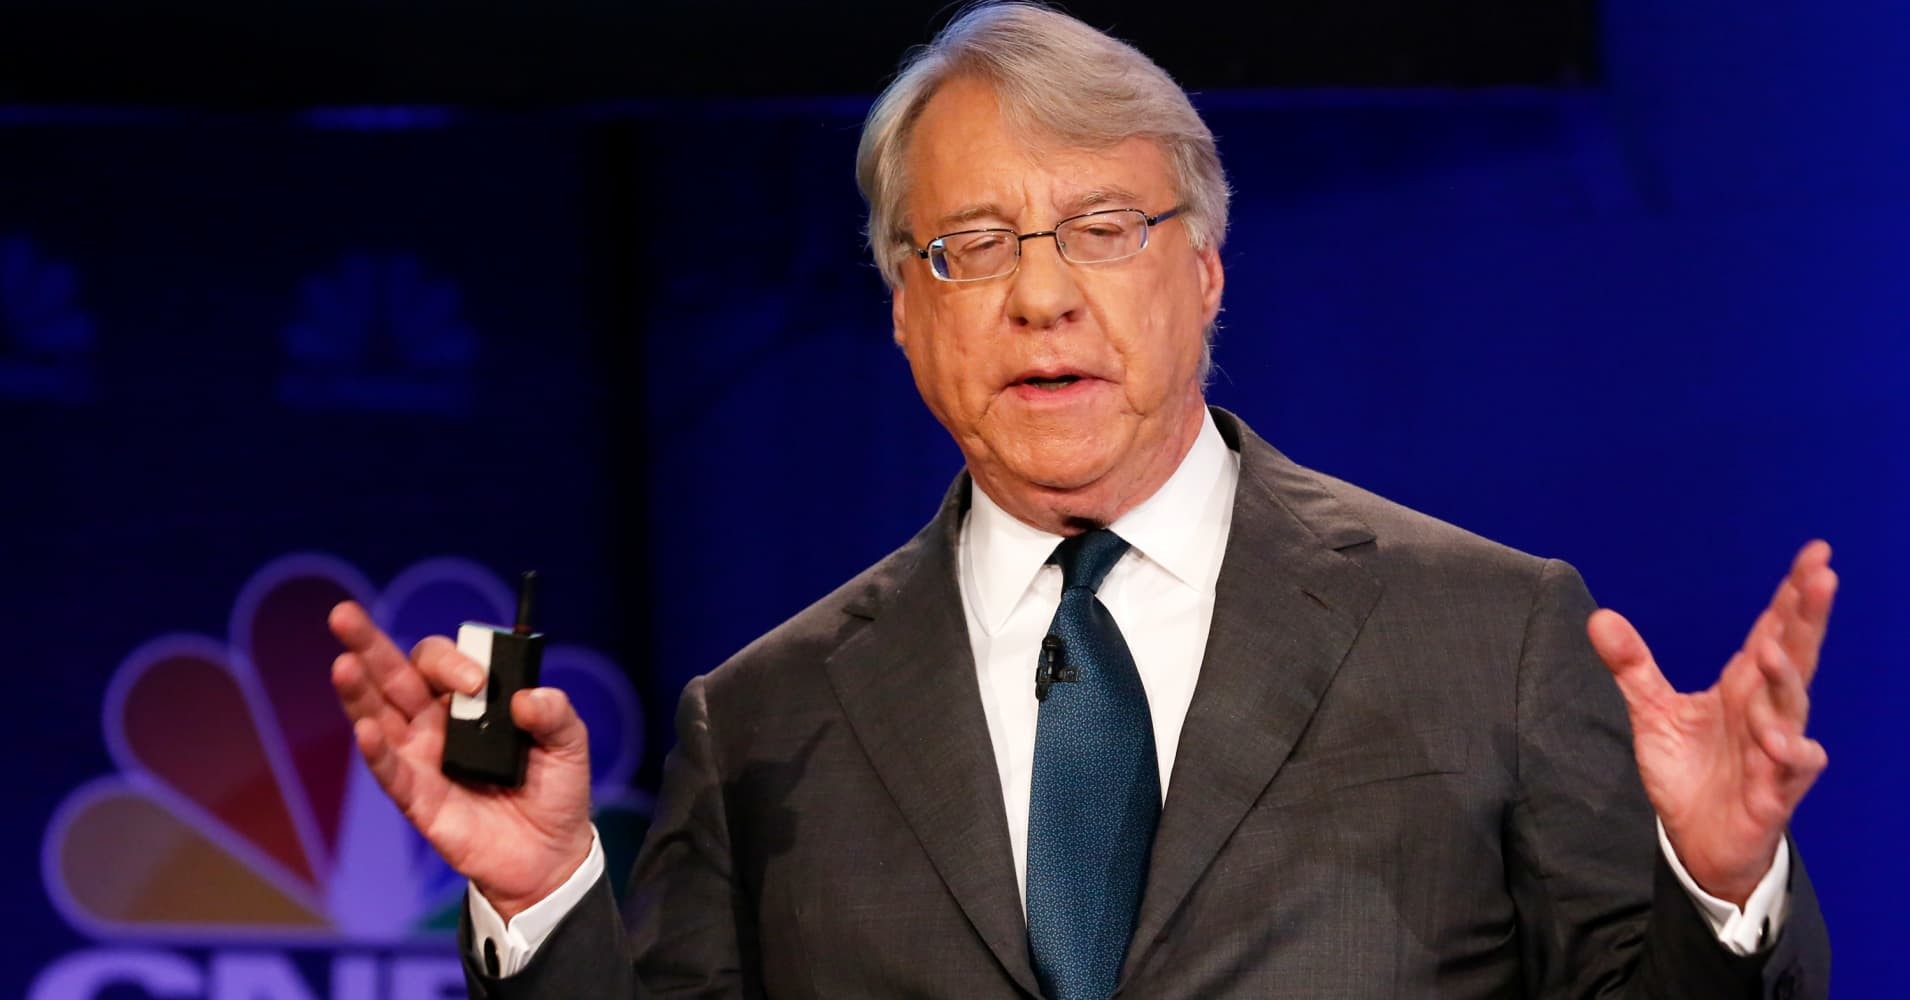 Jim Chanos reveals bets against Las Vegas Sands, Wynn Resorts amid US-China trade war